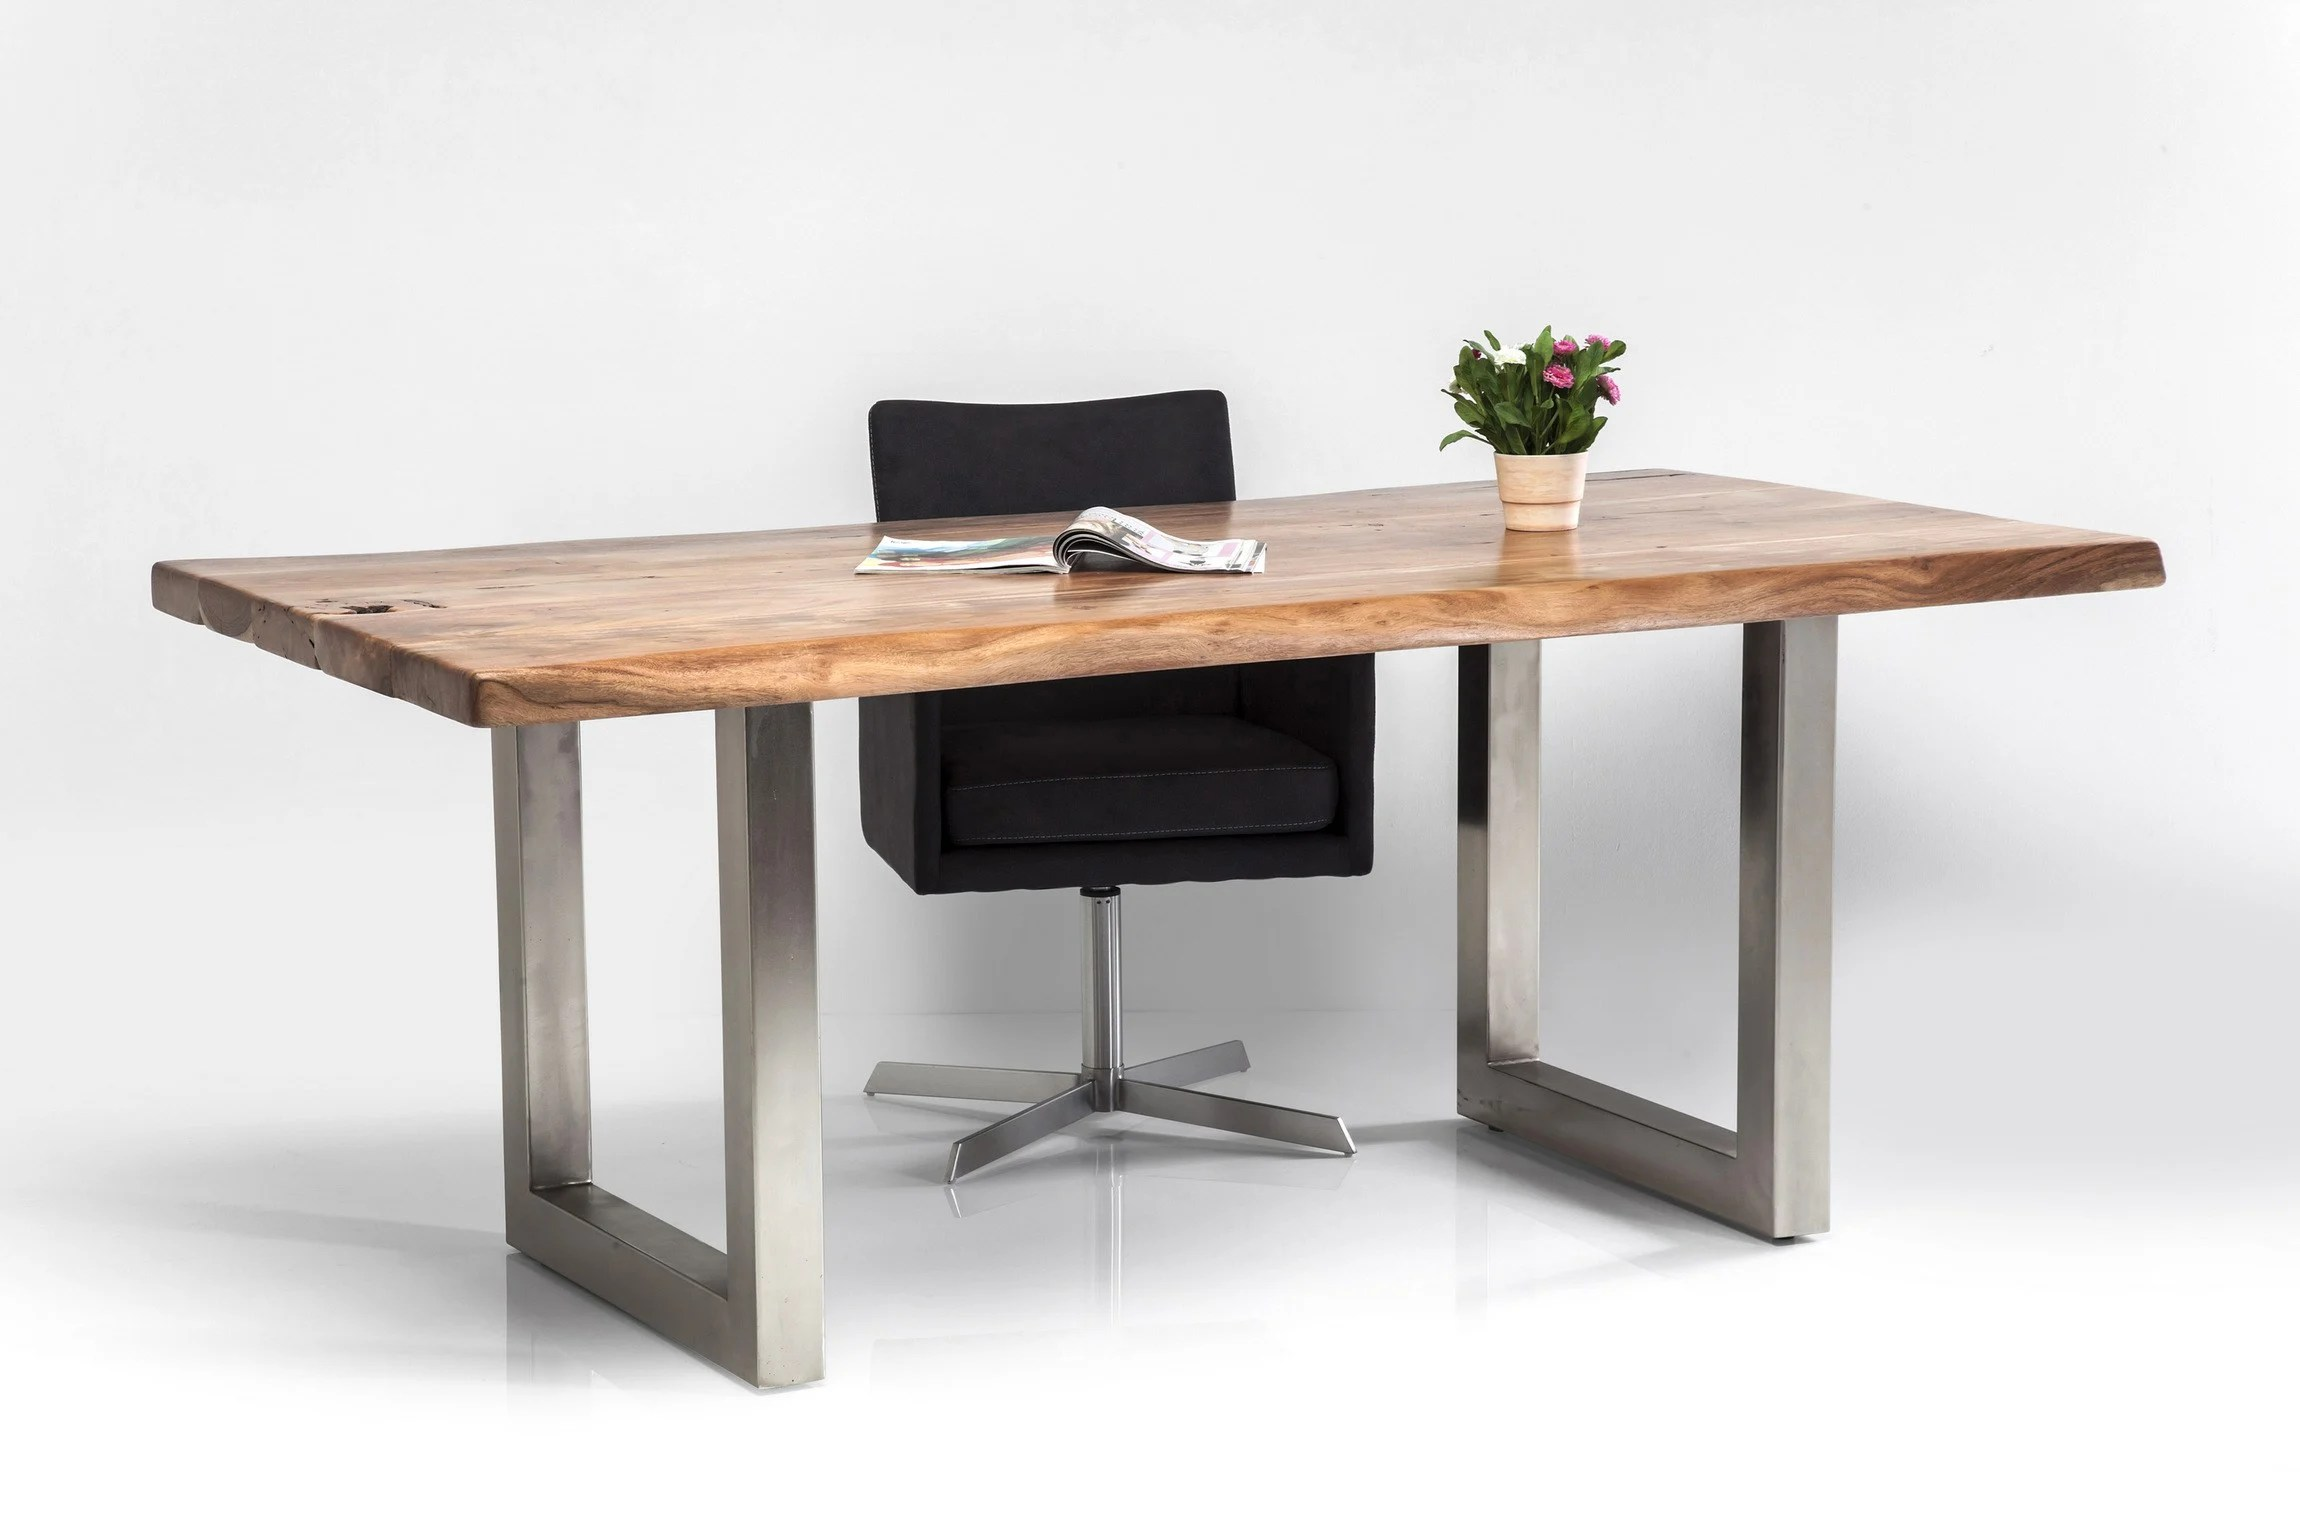 Care Design Rectangular Steel And Wood Table Pure Nature By Kare Design